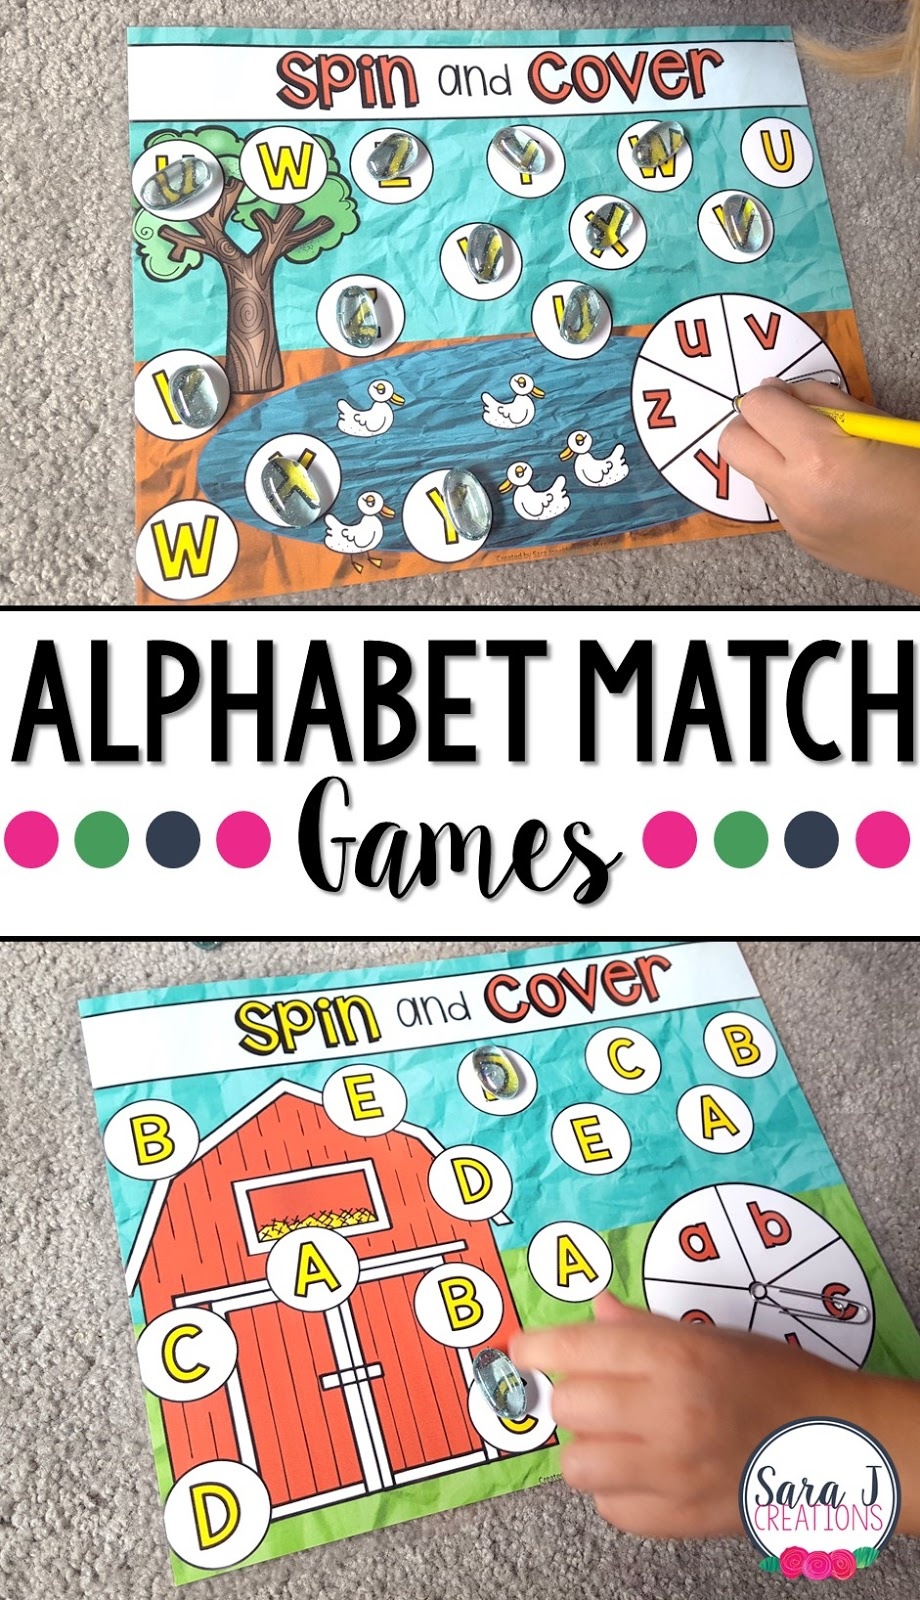 Free farm themed alphabet match game printables.  Great way to practice matching upper and lowercase letters.